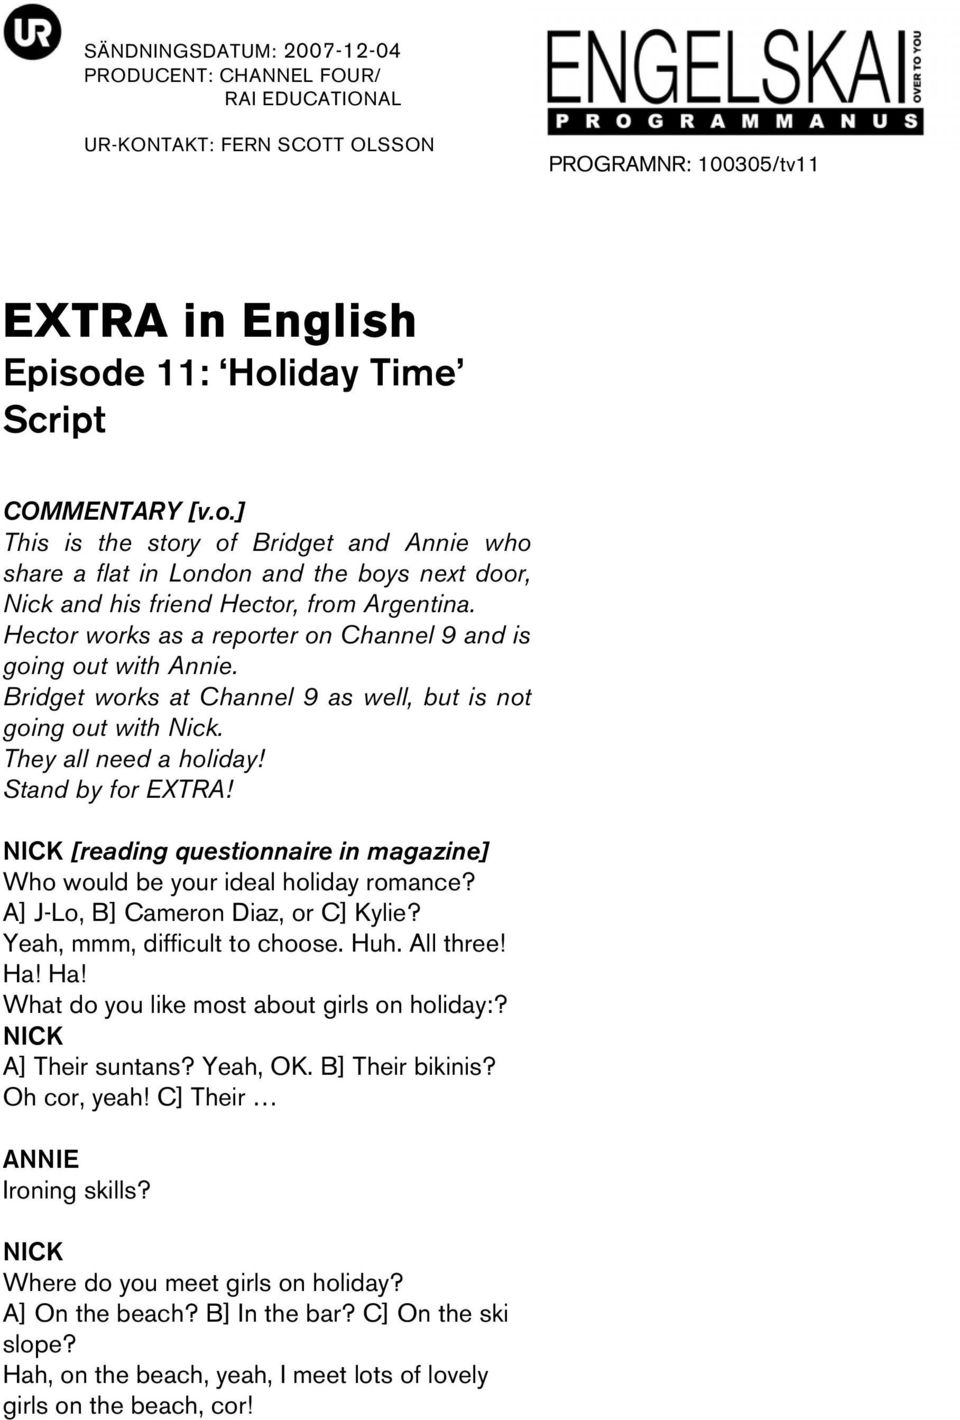 EXTRA in English Episode 11: Holiday Time Script - PDF